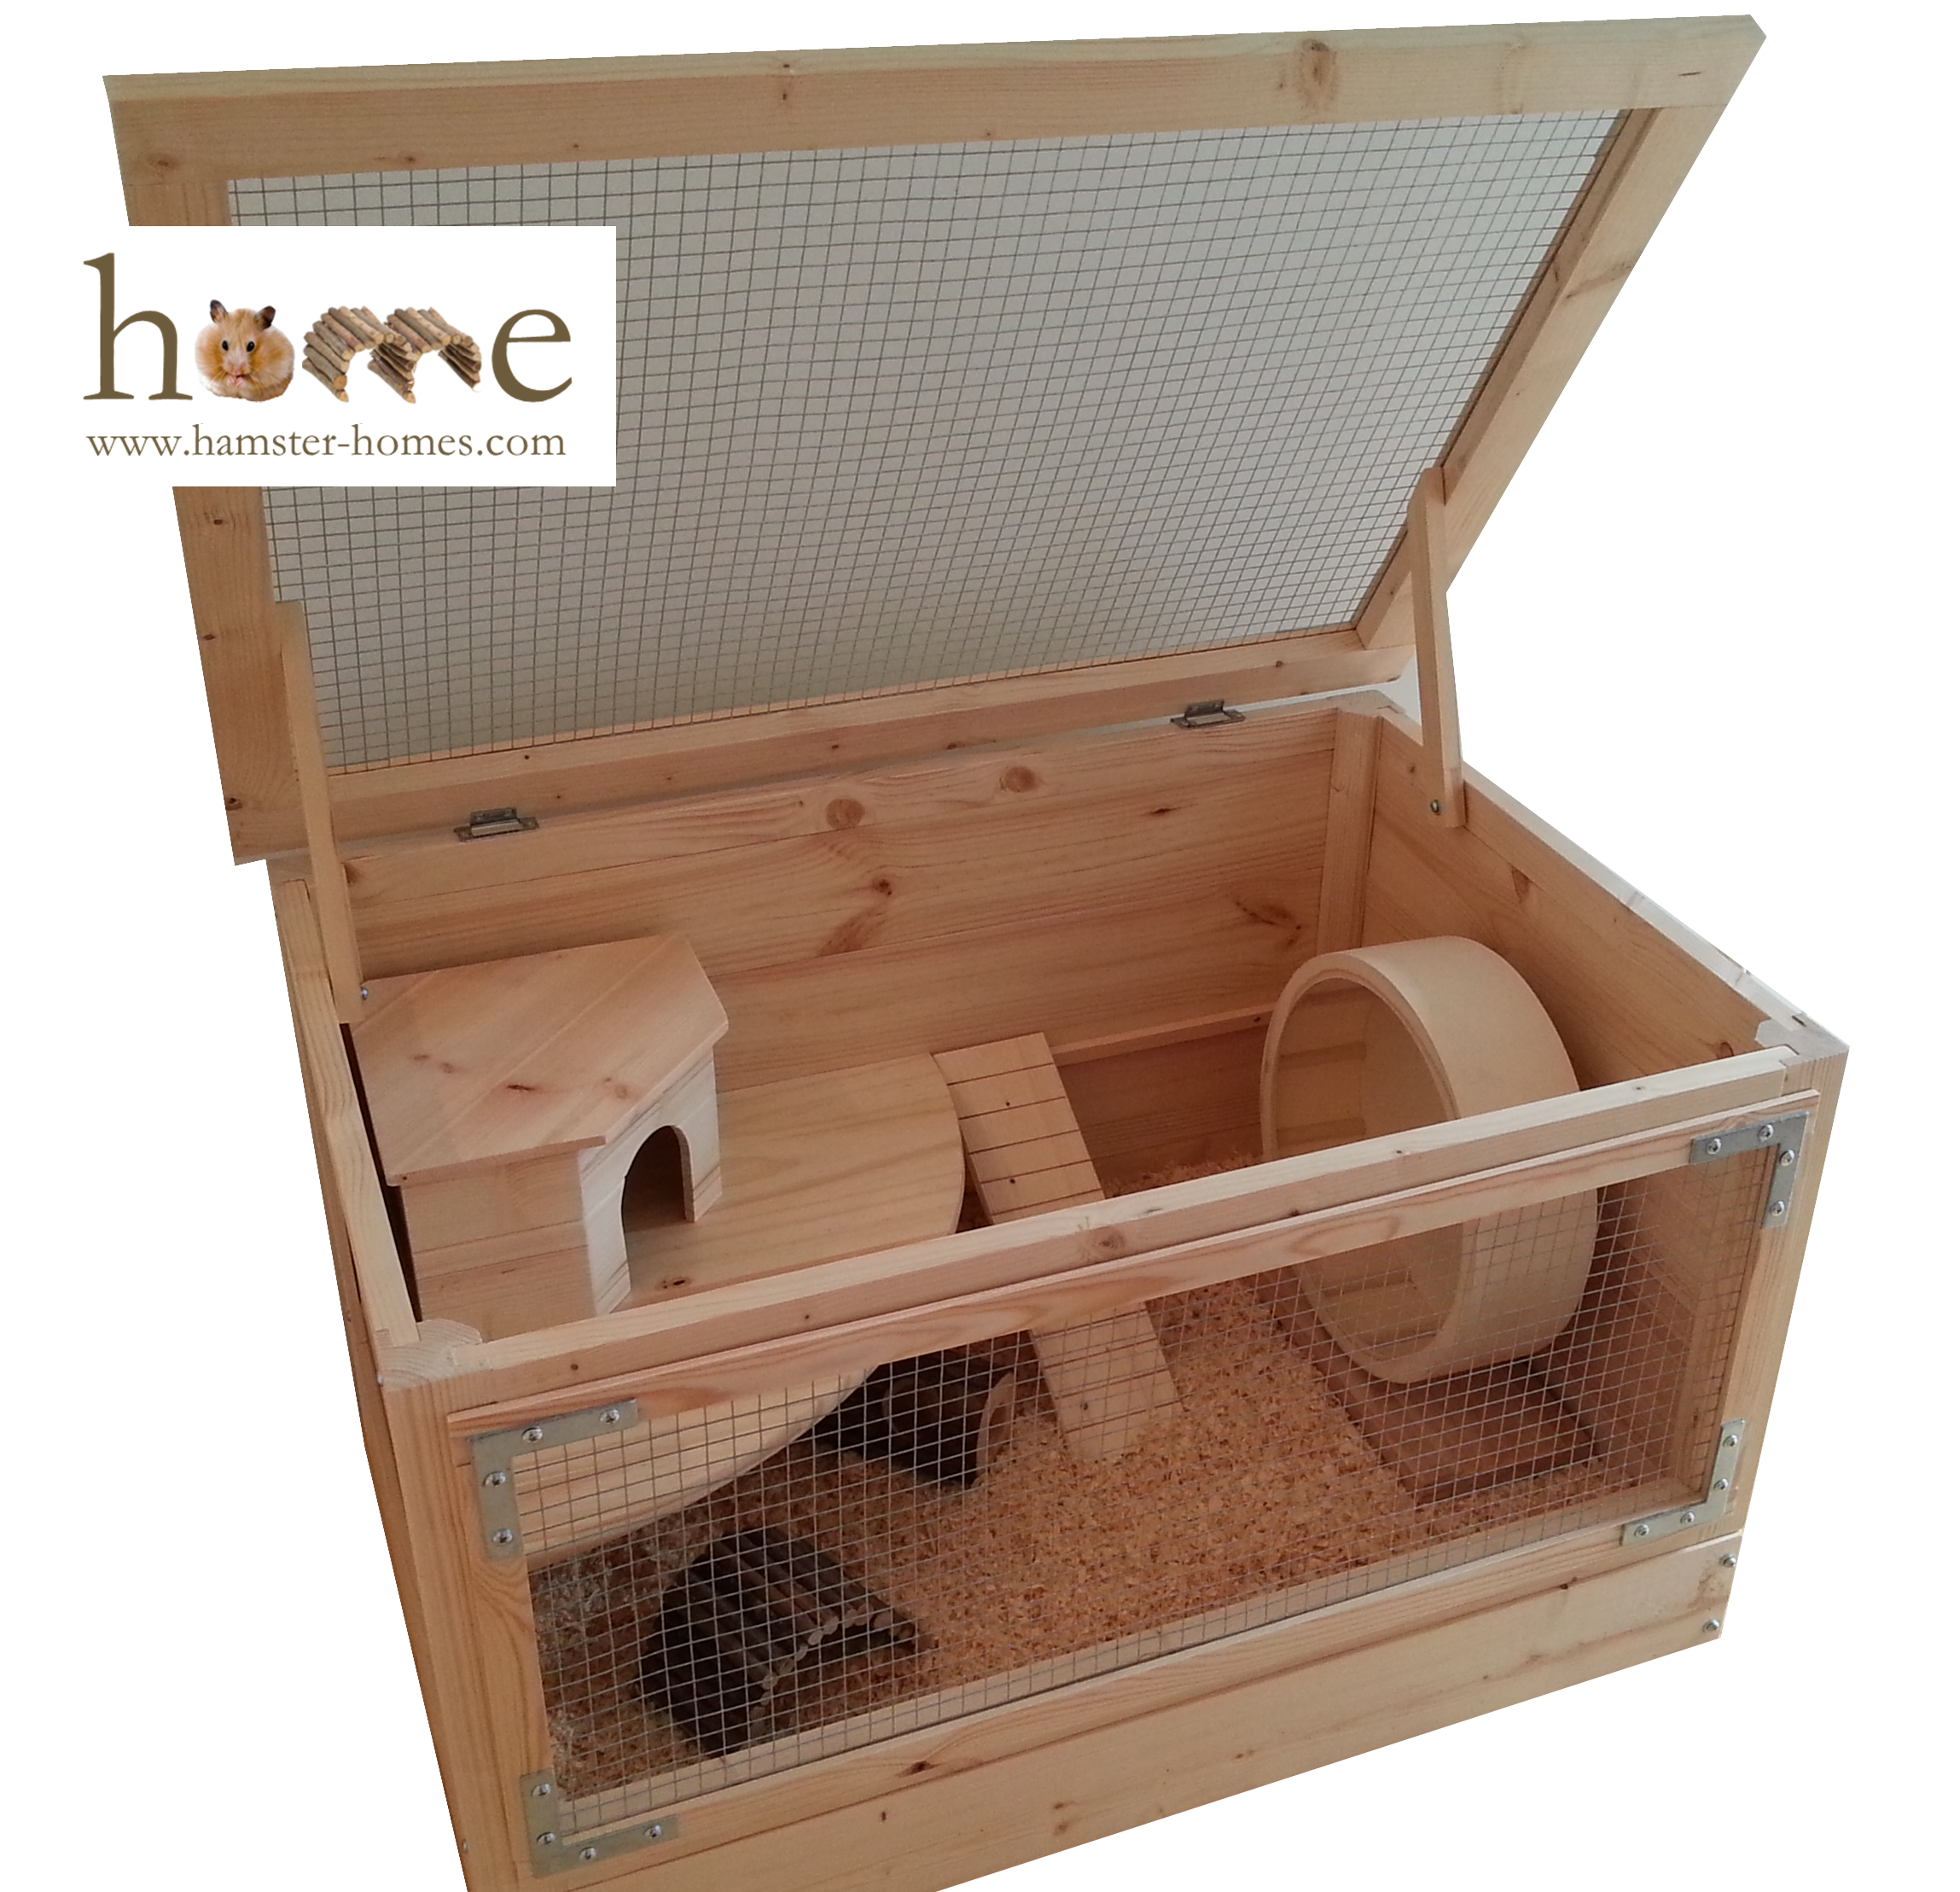 Large Wooden Hamster Cage 80 Cm X 50 Cm High Quality